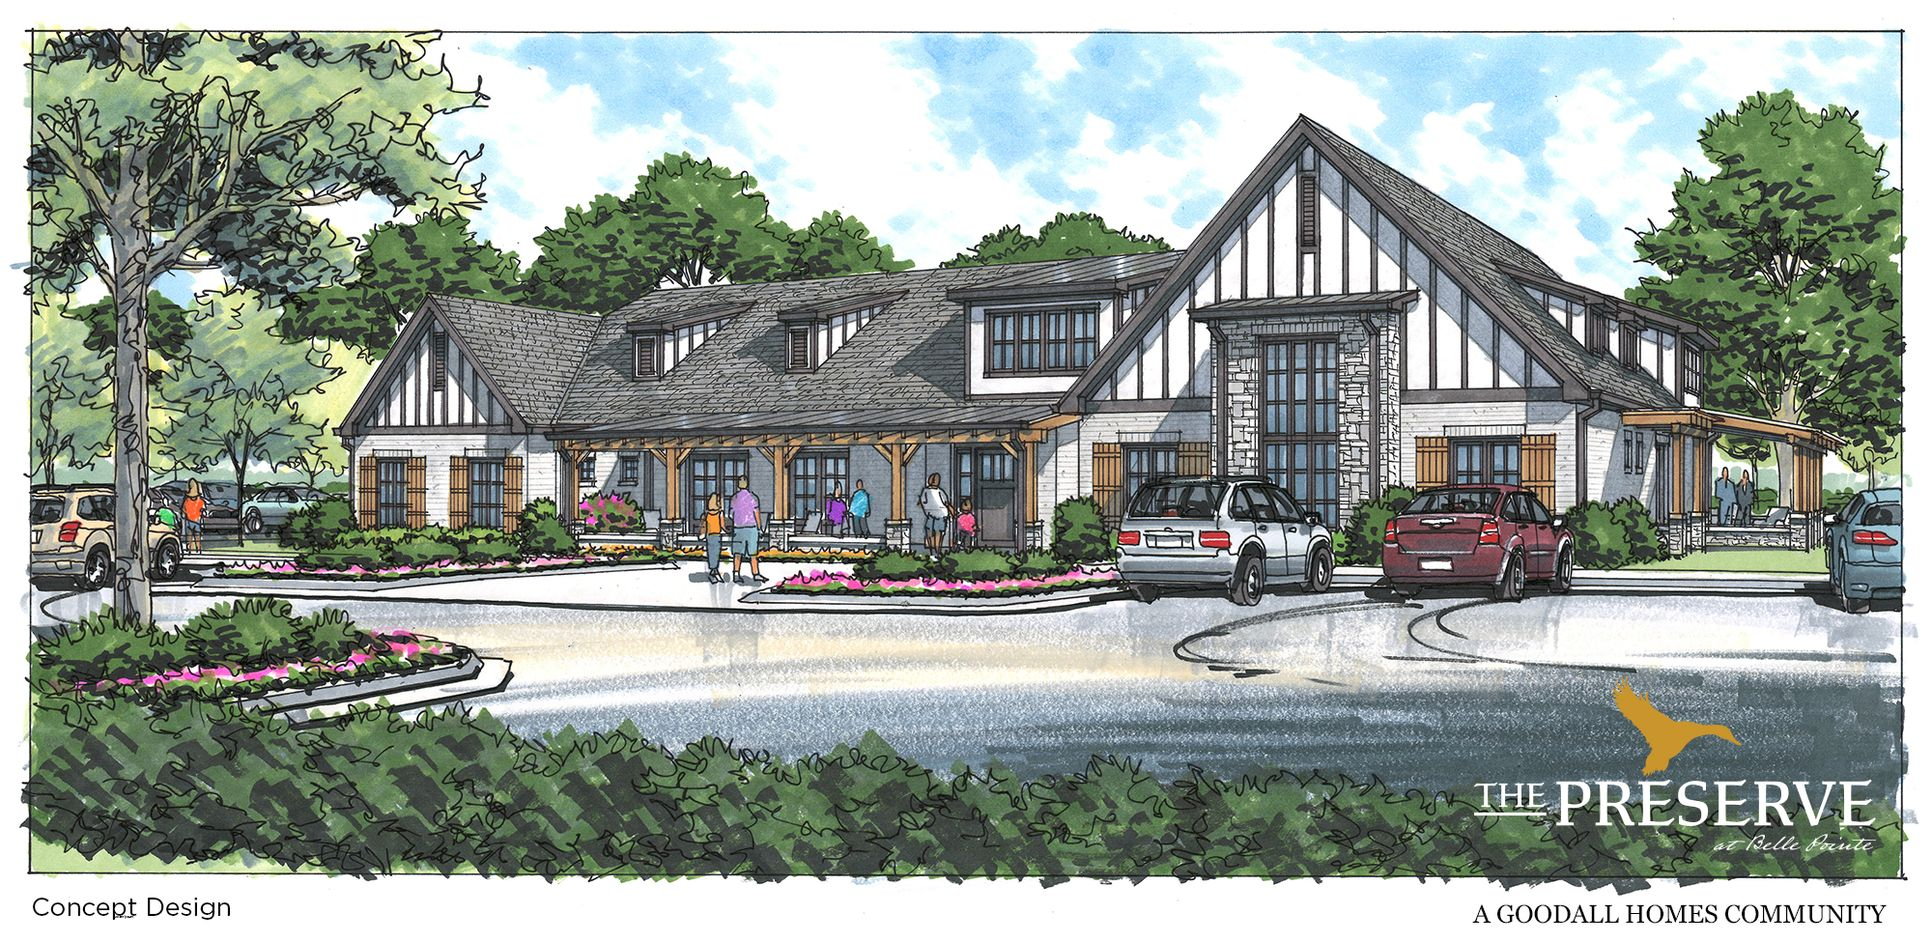 The Preserve at Belle Point Amenity Center Rendering